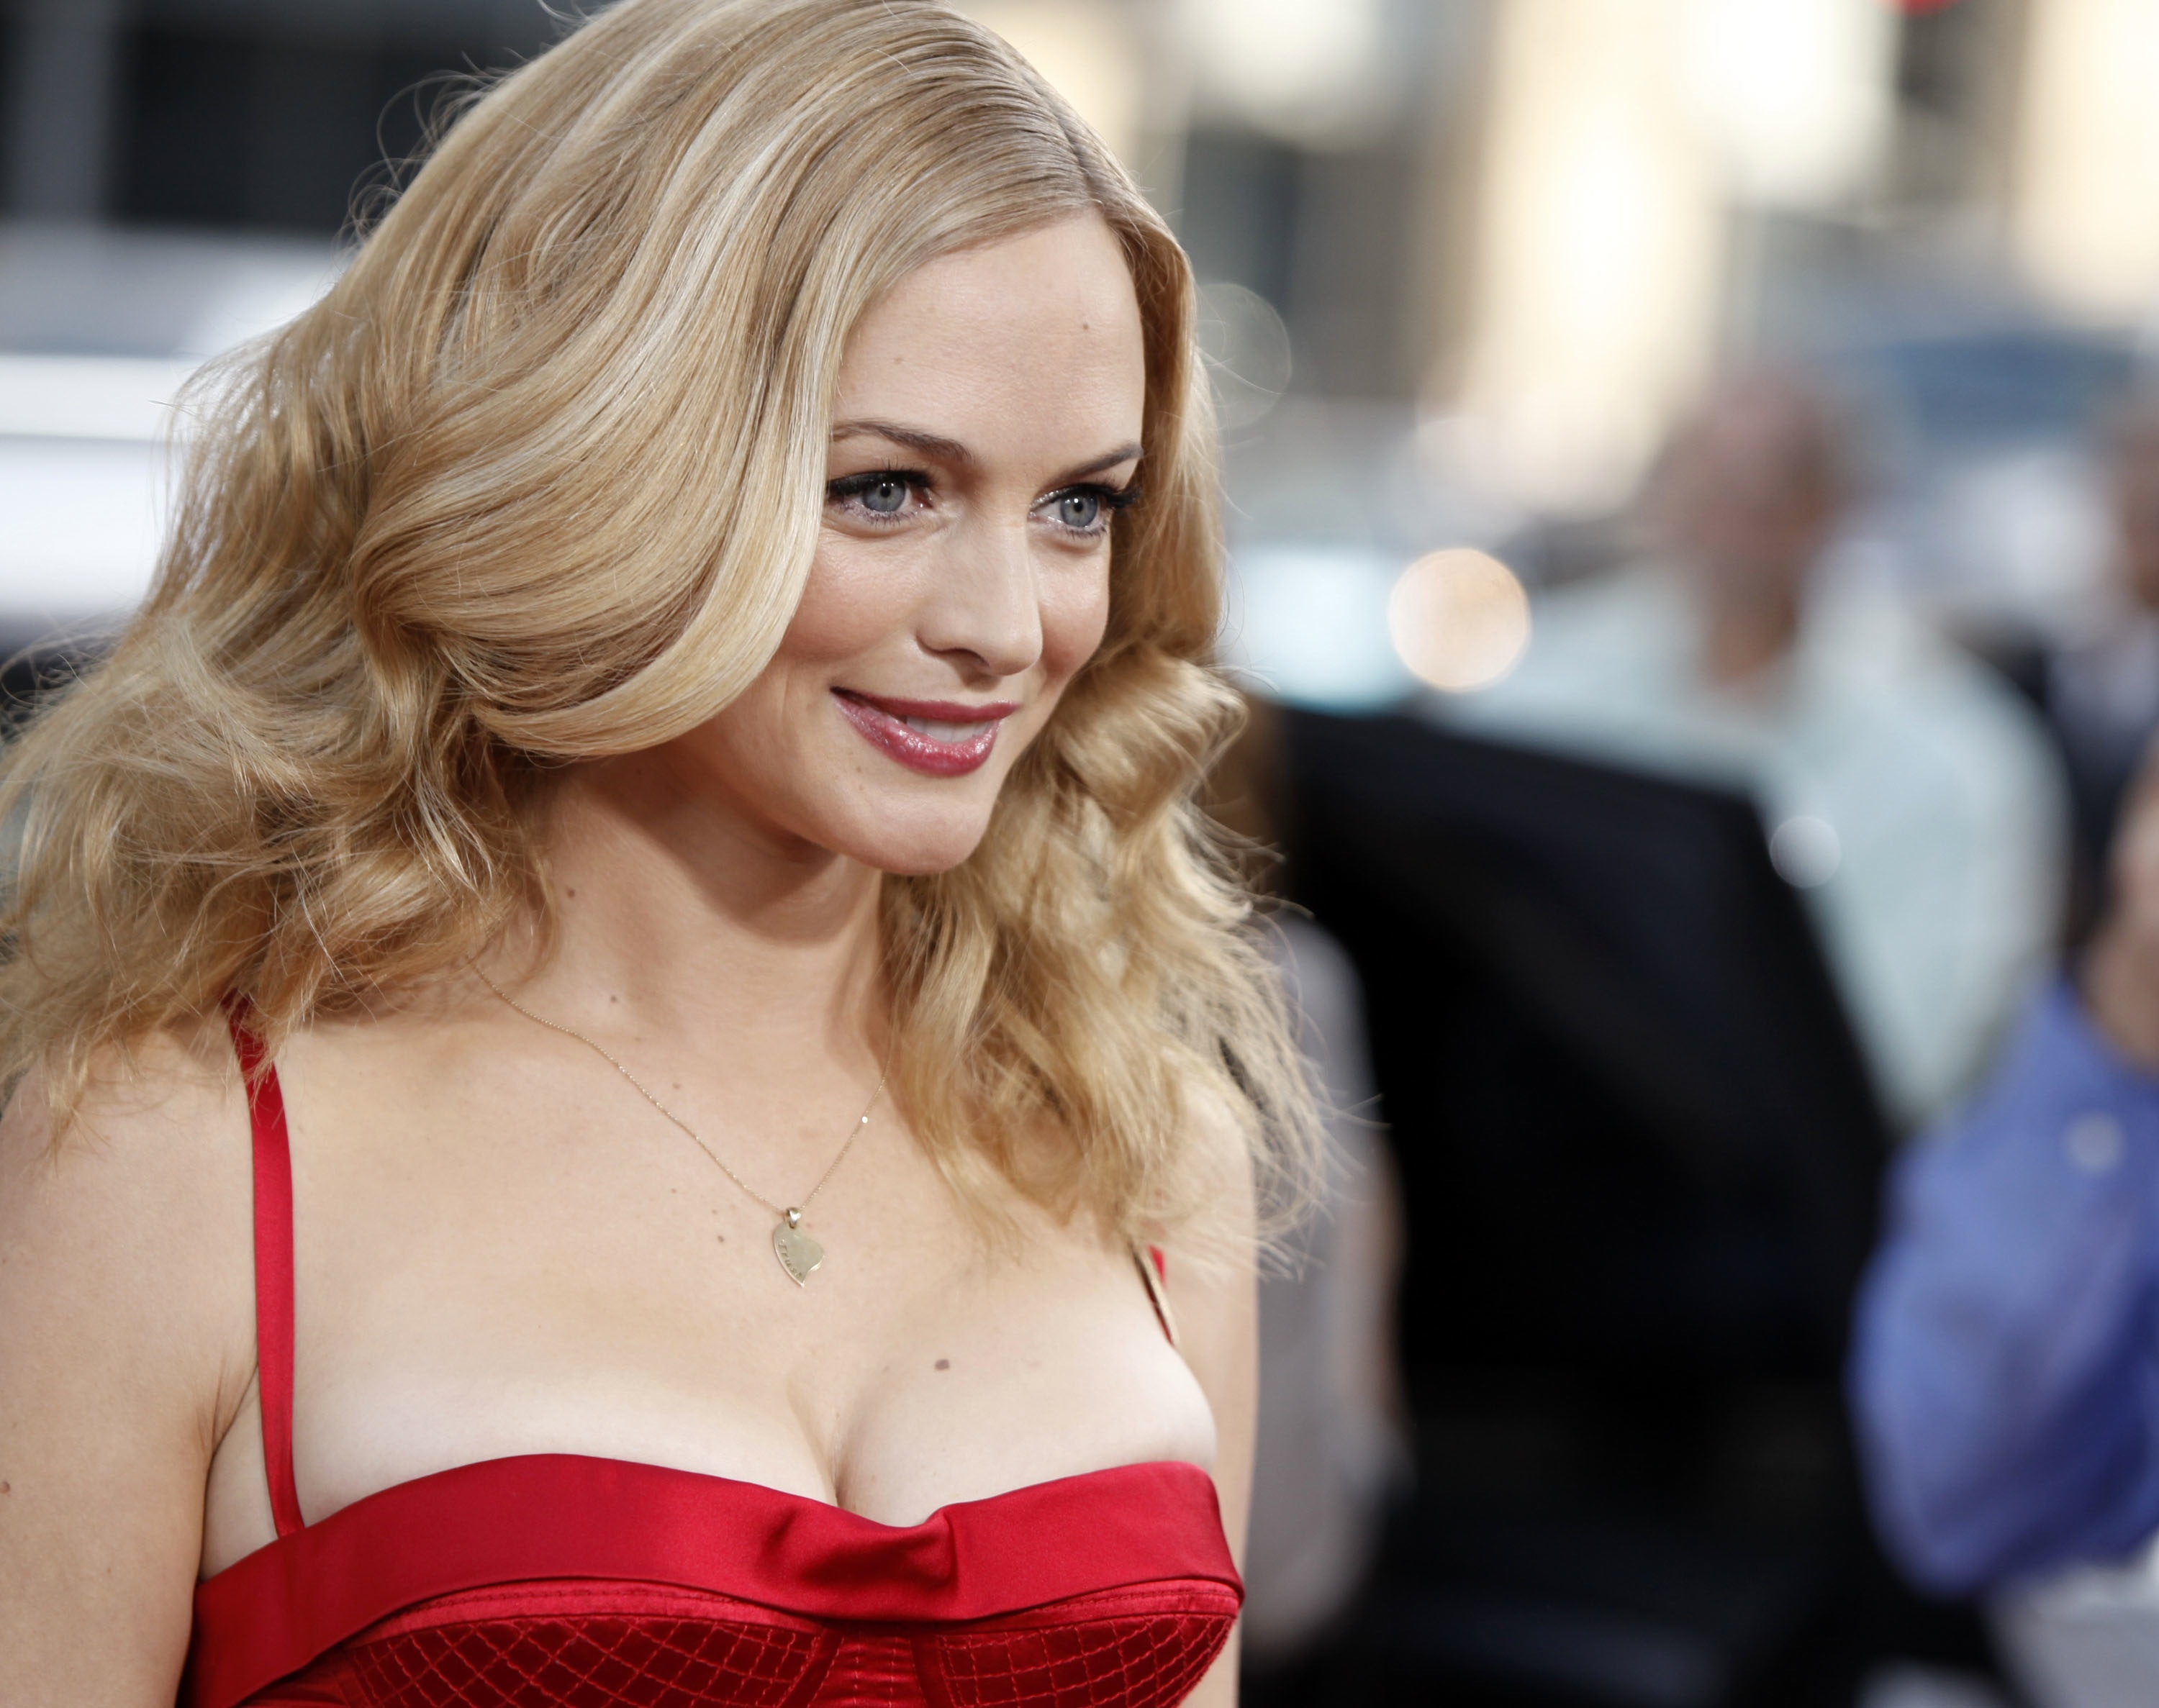 Hot Celebrity Cleavage photo 22